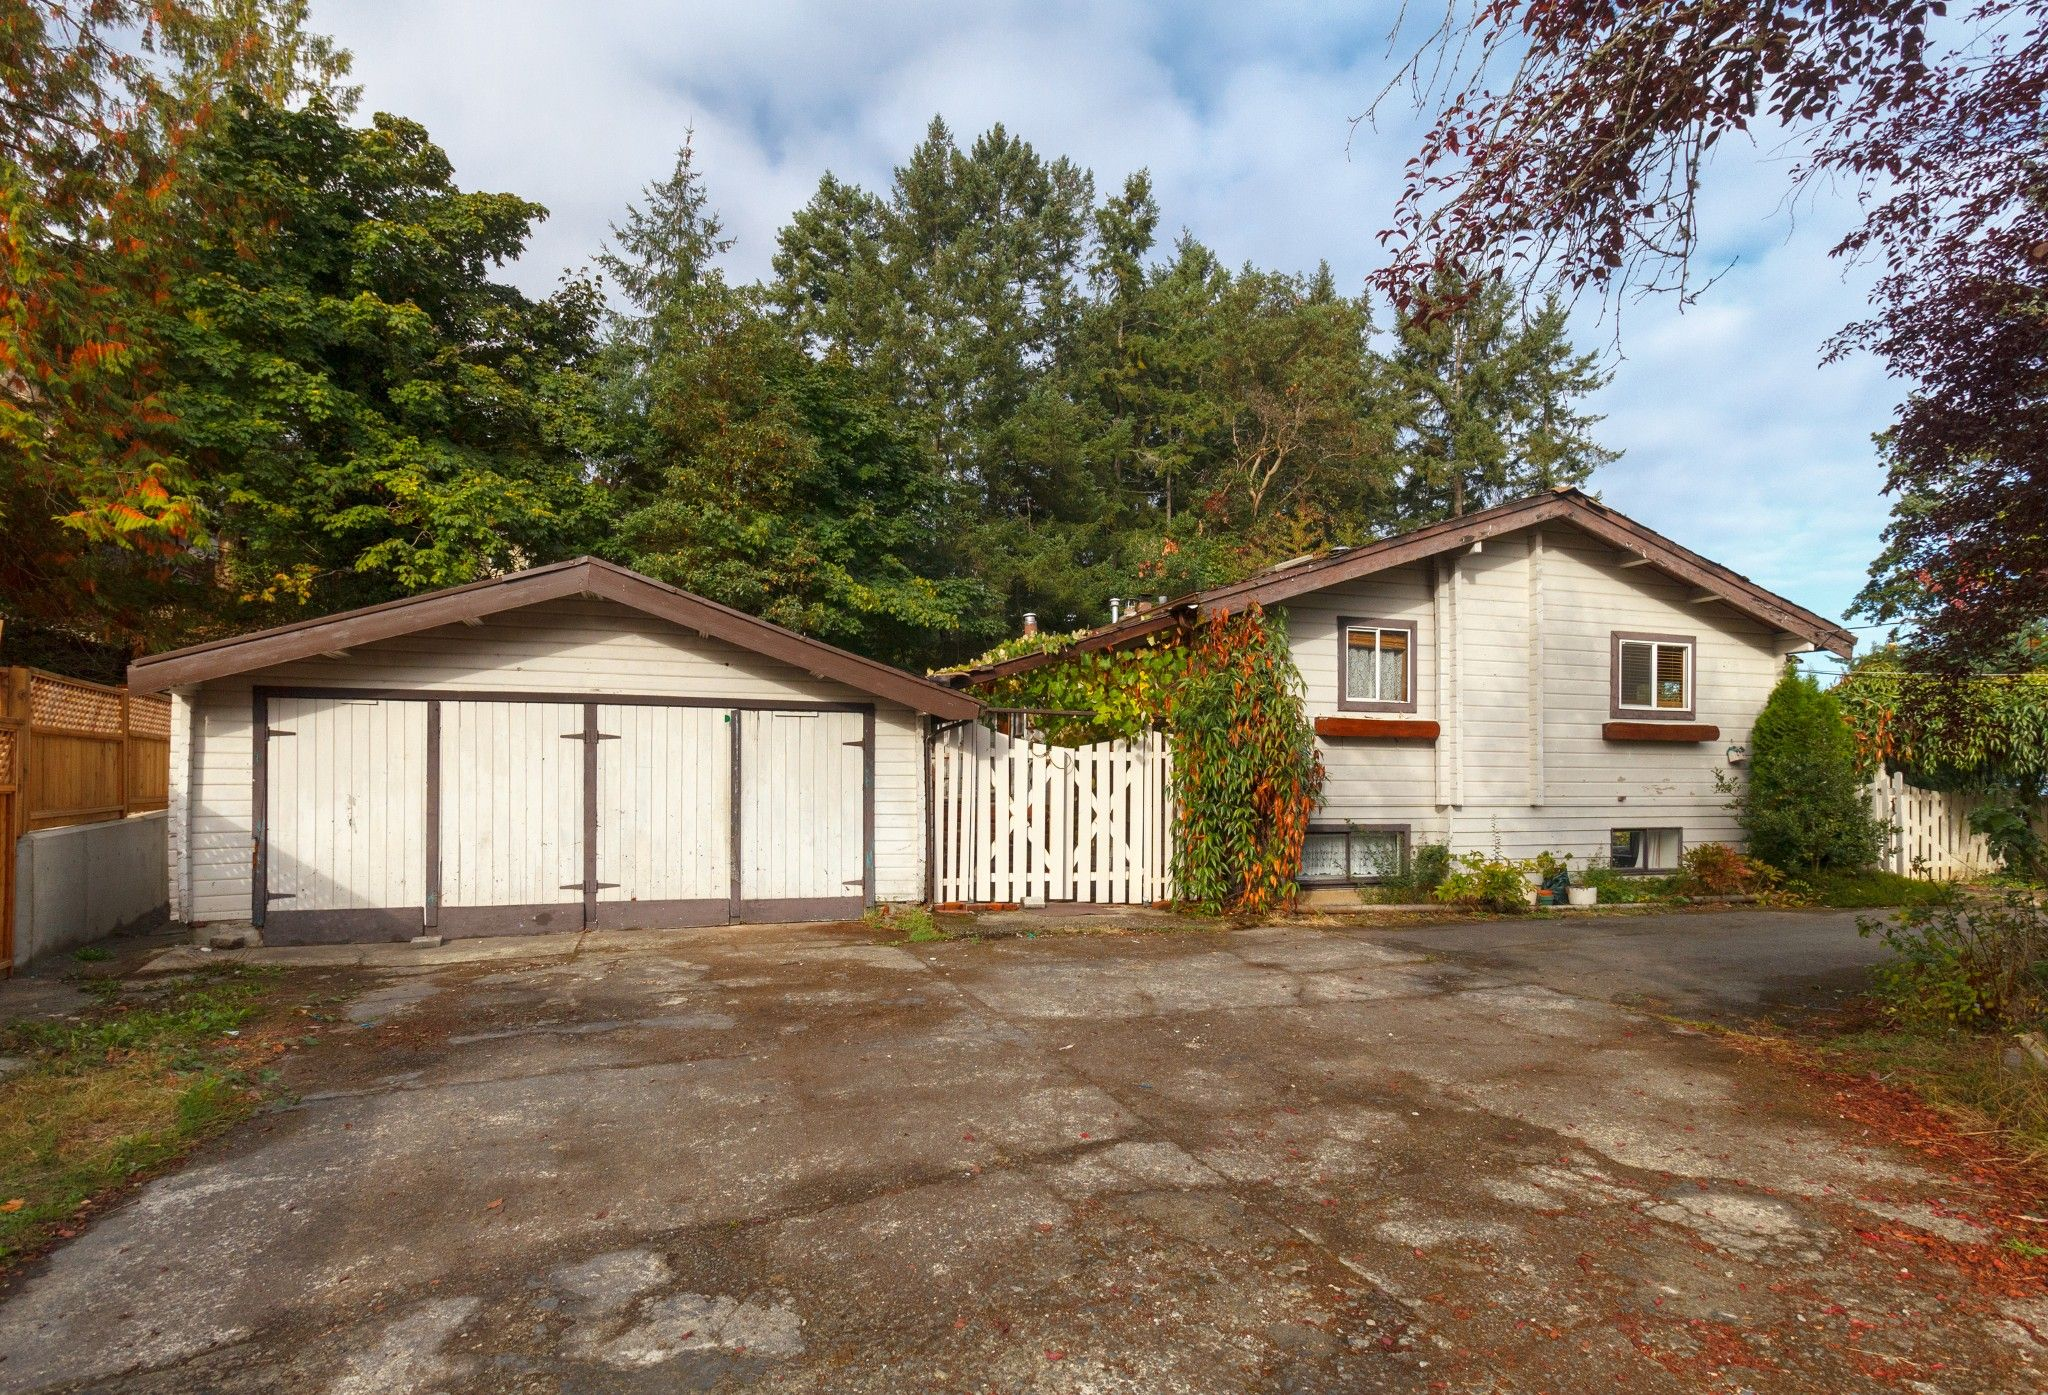 Main Photo: 6898 Woodward Drive in Central Saanich: Single Family for sale : MLS®# 383677